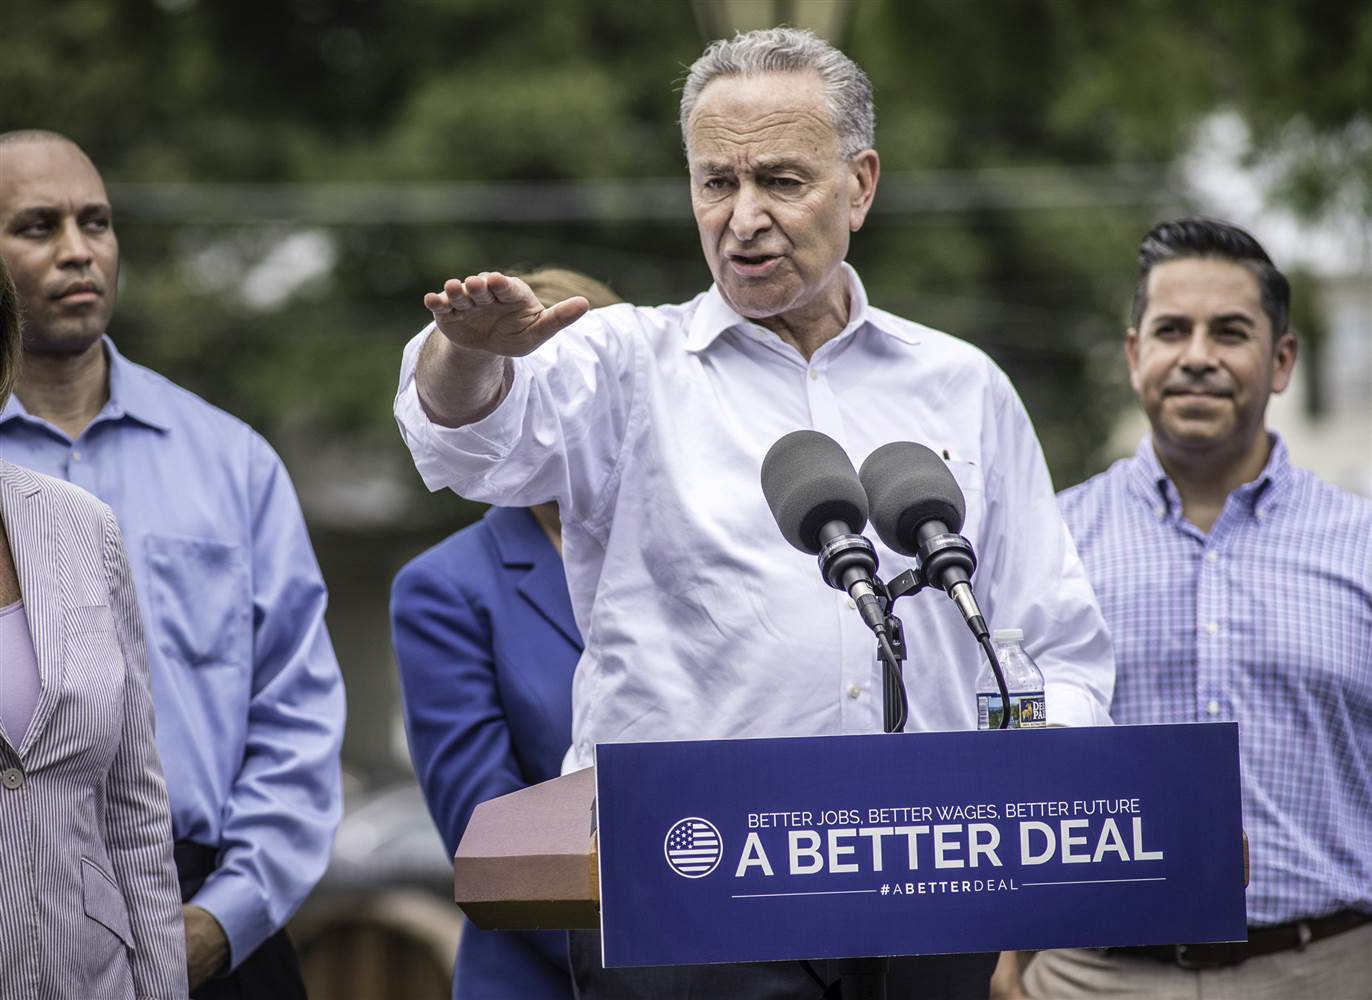 A BETTER DEAL: A NEW MESSAGE BY DEMOCRATS.